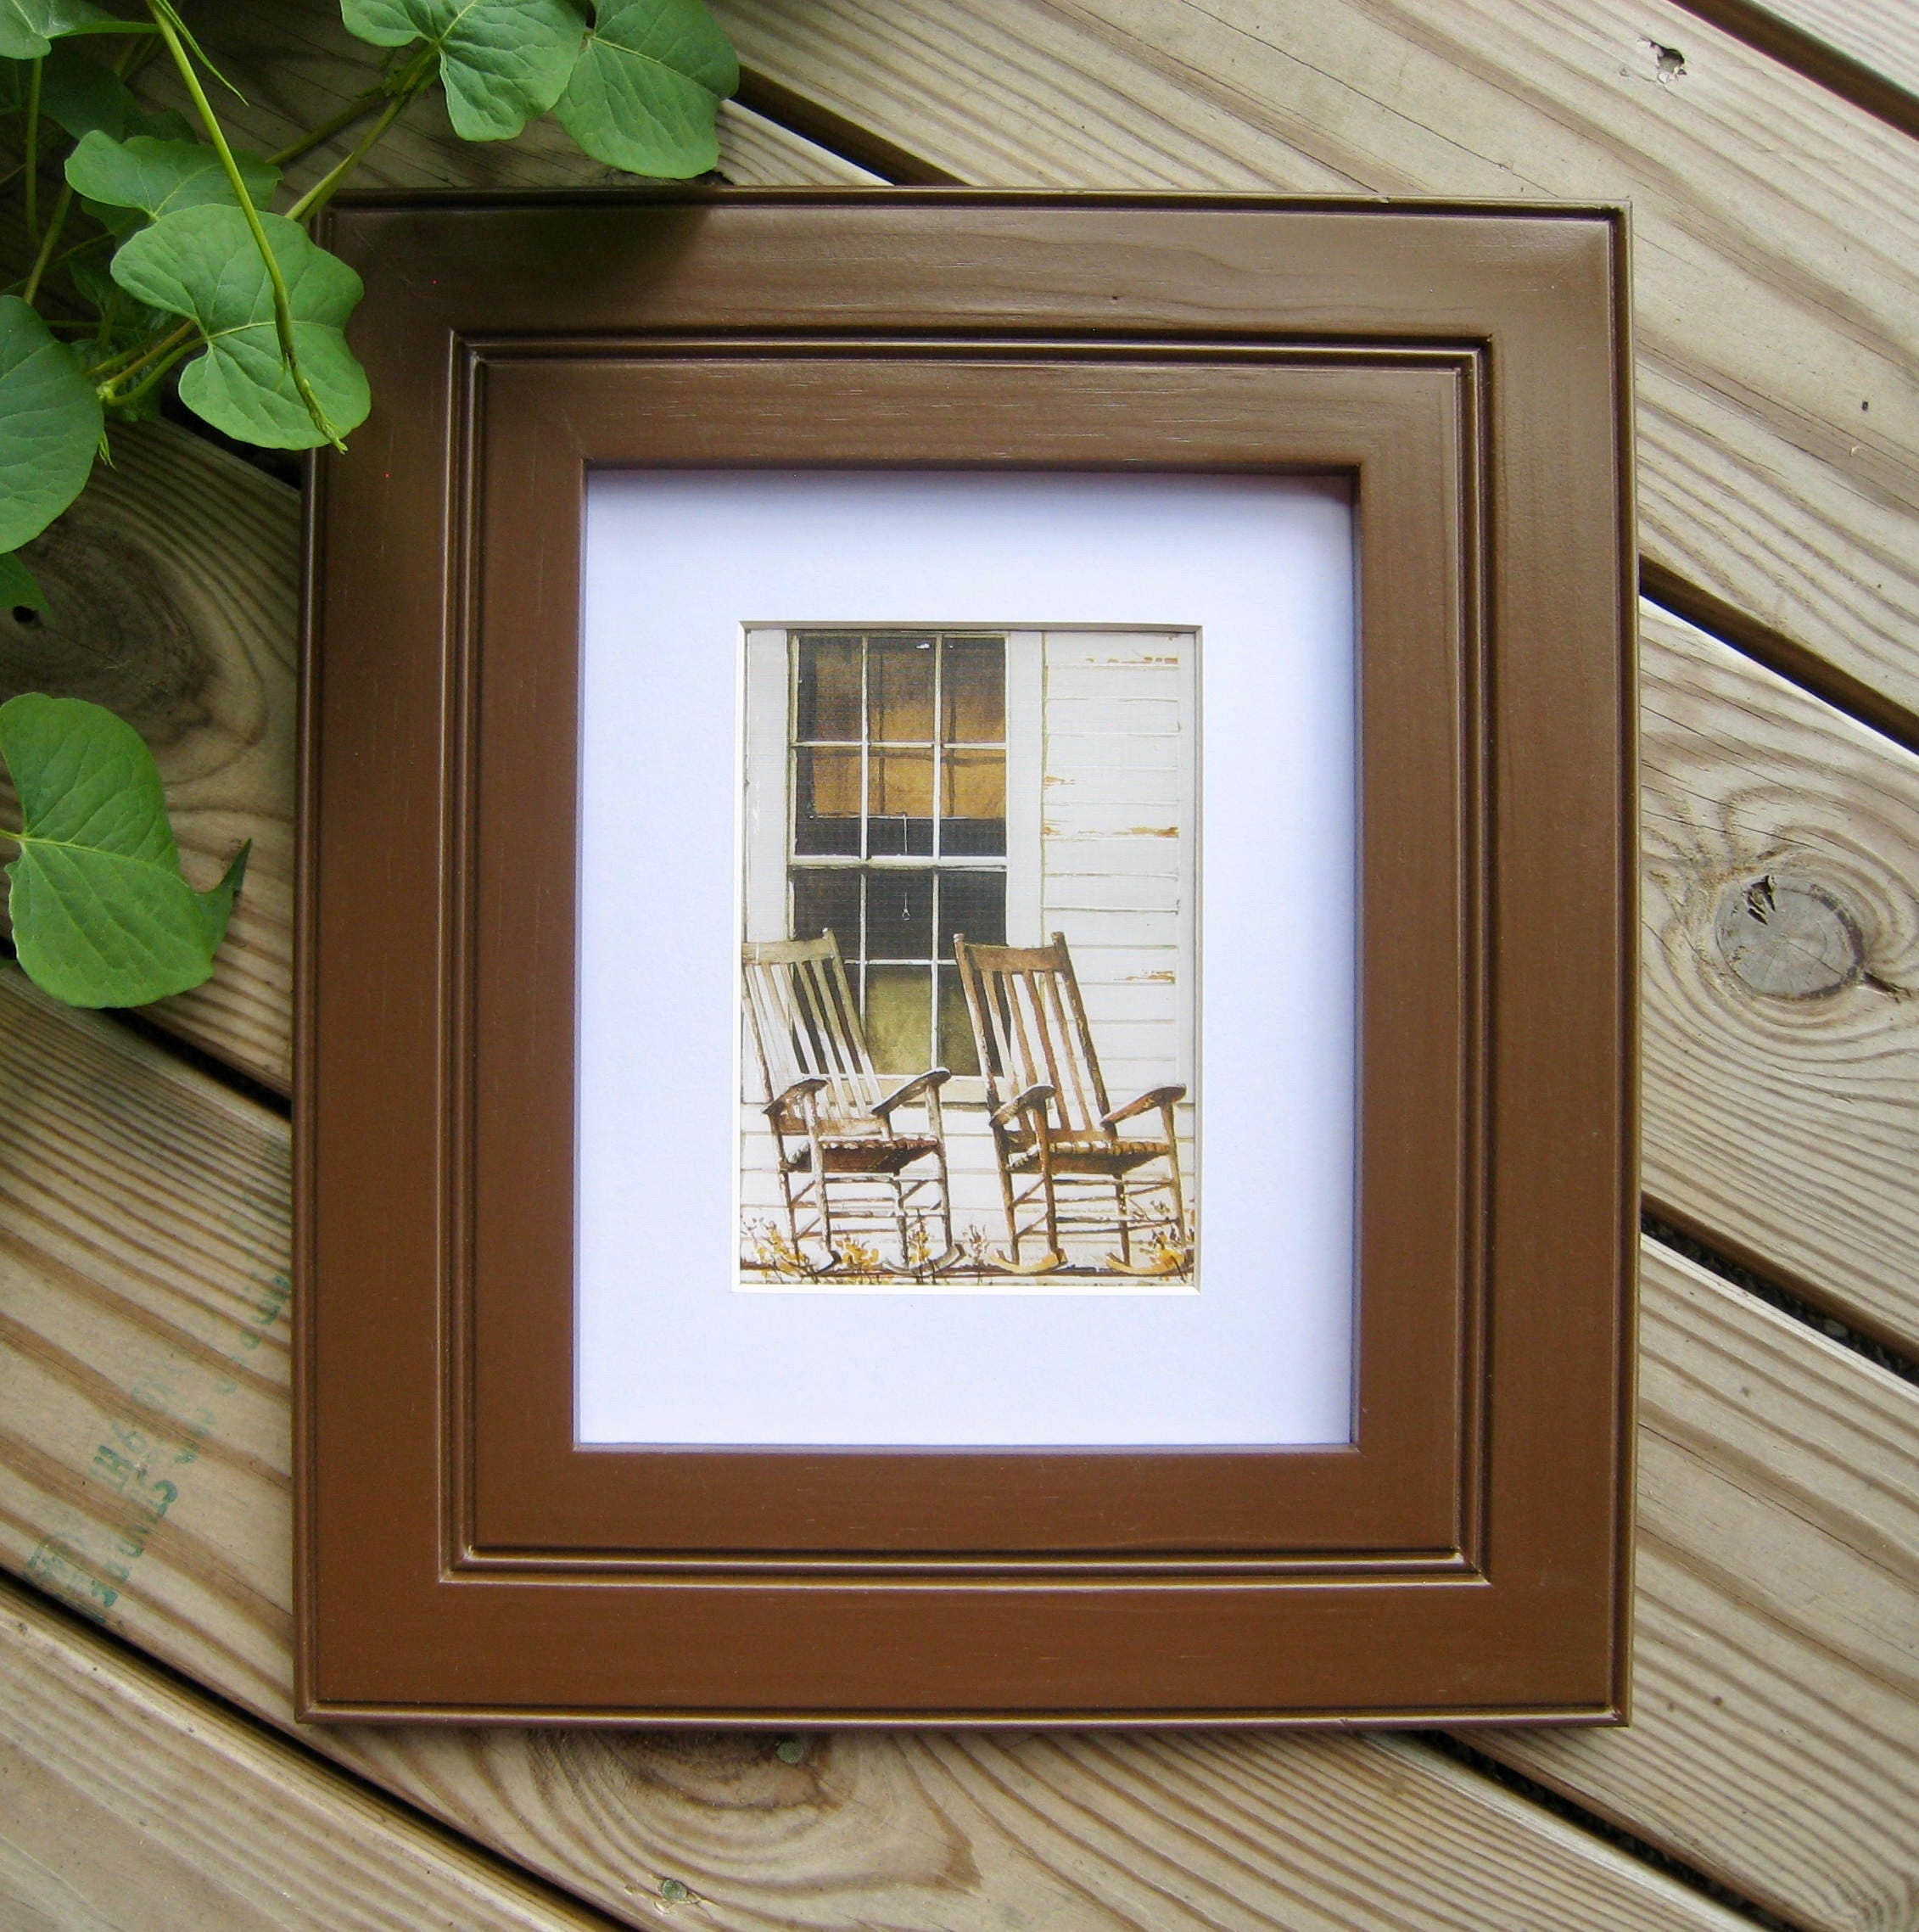 qlt bronze distressed p prod wid solutions bead mats frame matted mat to hei with gallery